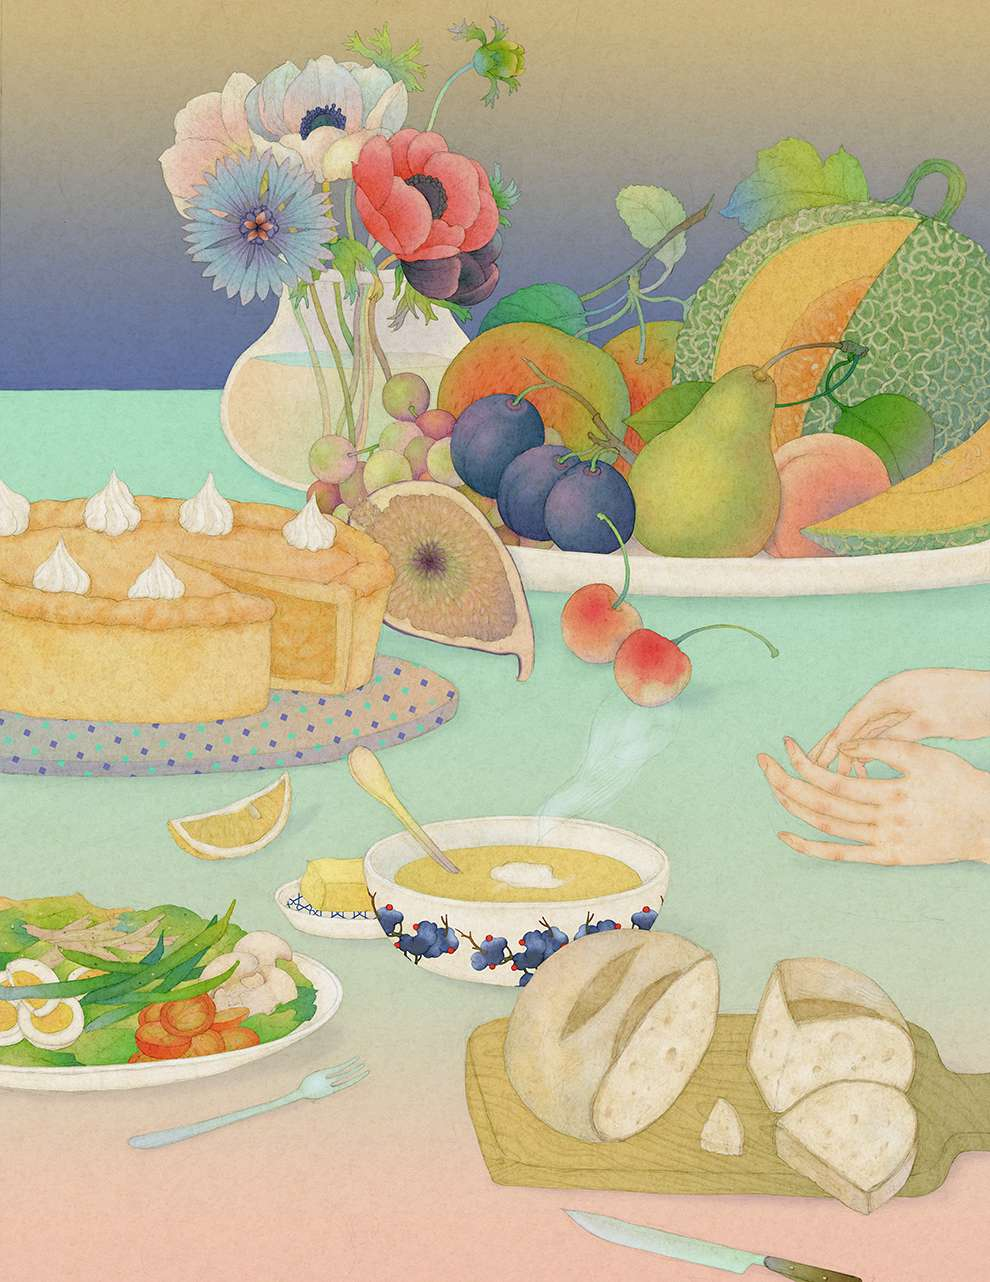 Whooli Chen, Delicate hand-painted illustration of a table with a plate of salad, a bowl of fruits, a soup and some bread. Beautiful pastel colors